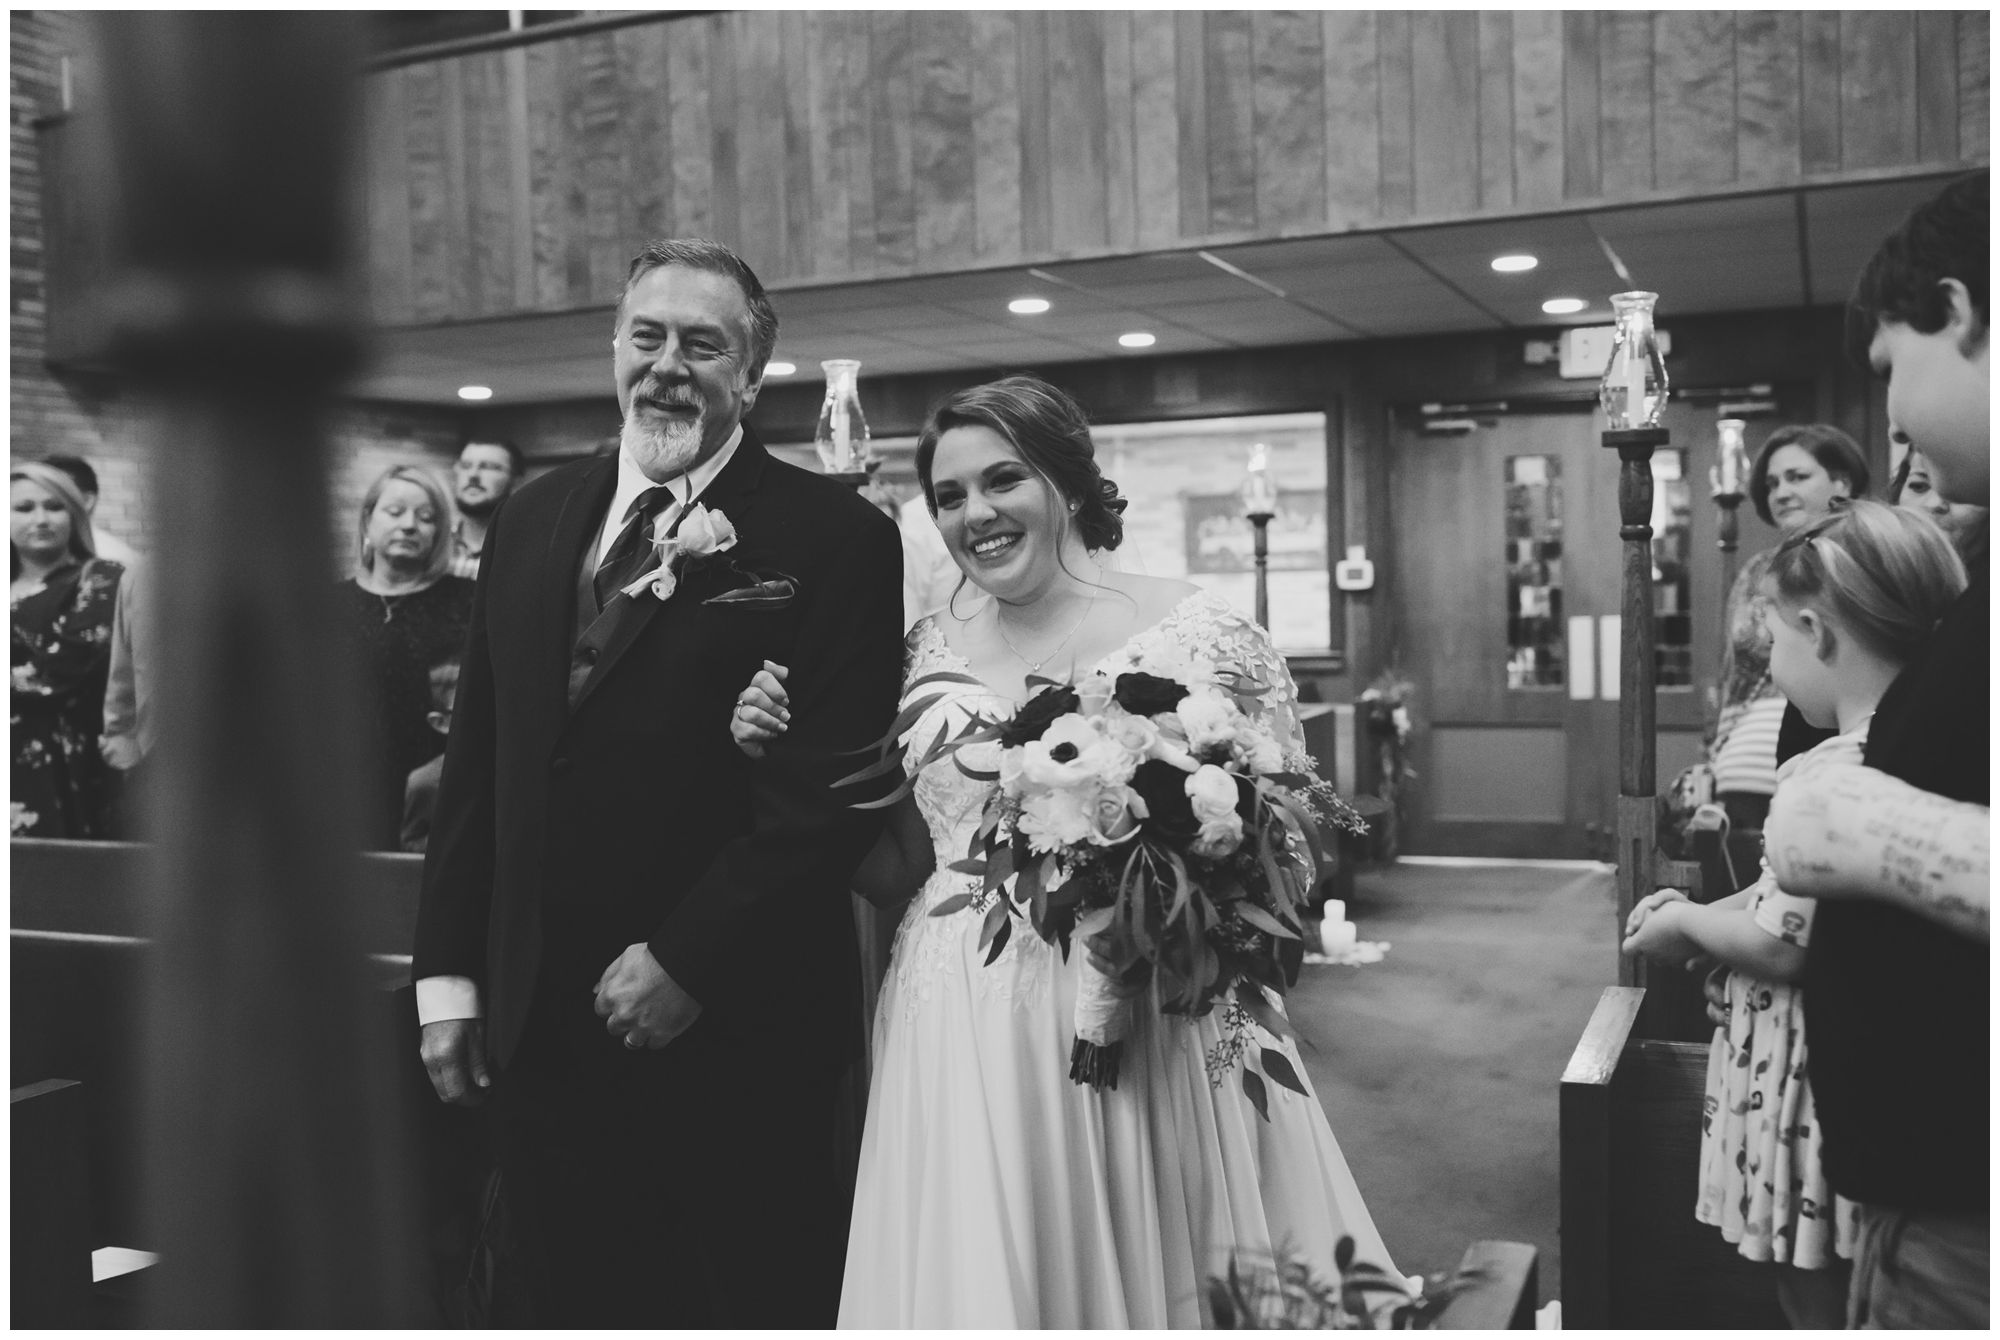 bride walks down aisle with father during wedding ceremony at Zion Lutheran Church in Decatur